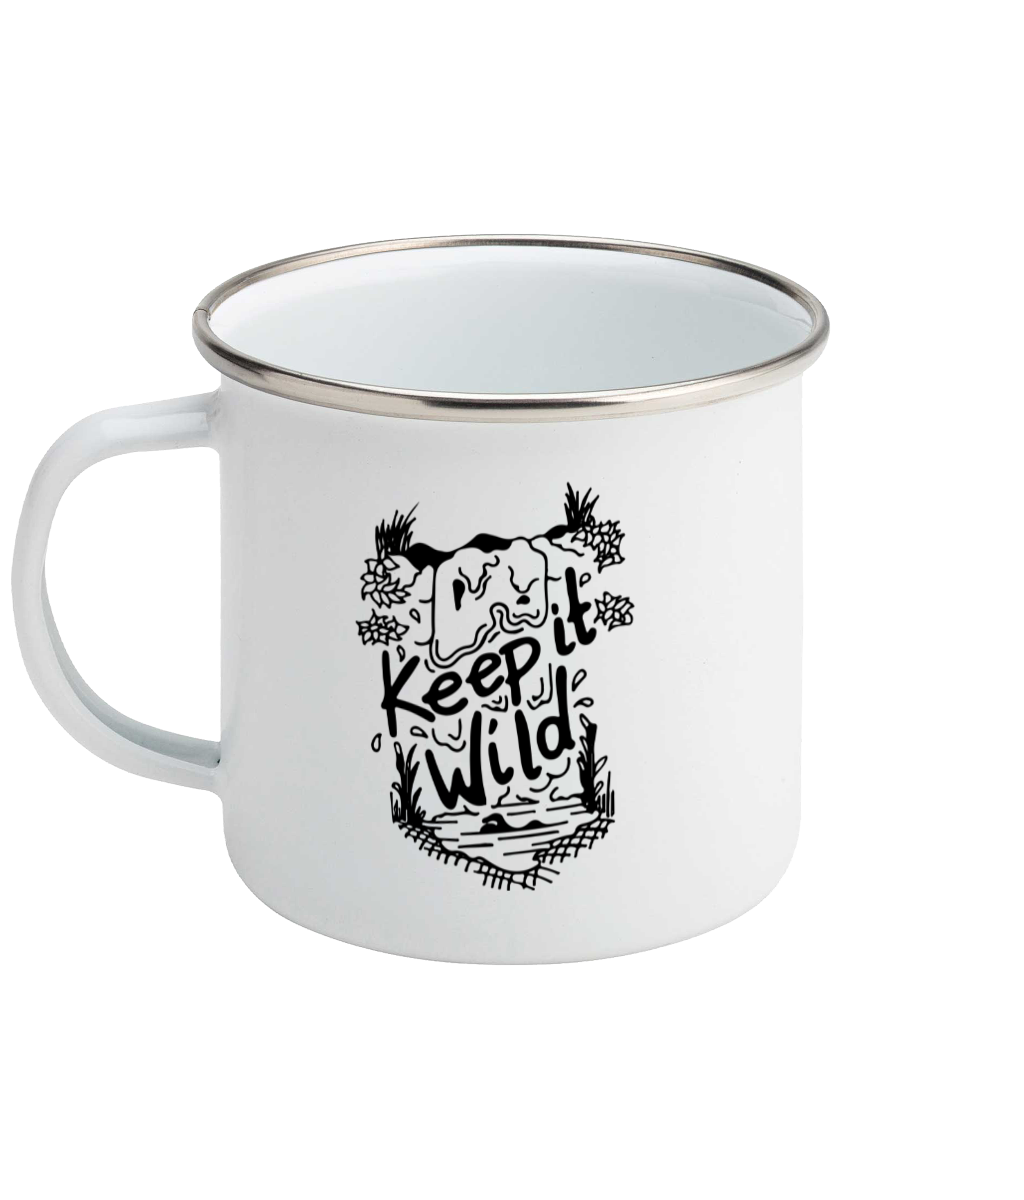 Keep It Wild - Enamel Mug, Suggested Products, Pen and Ink Studios Adventure Clothing